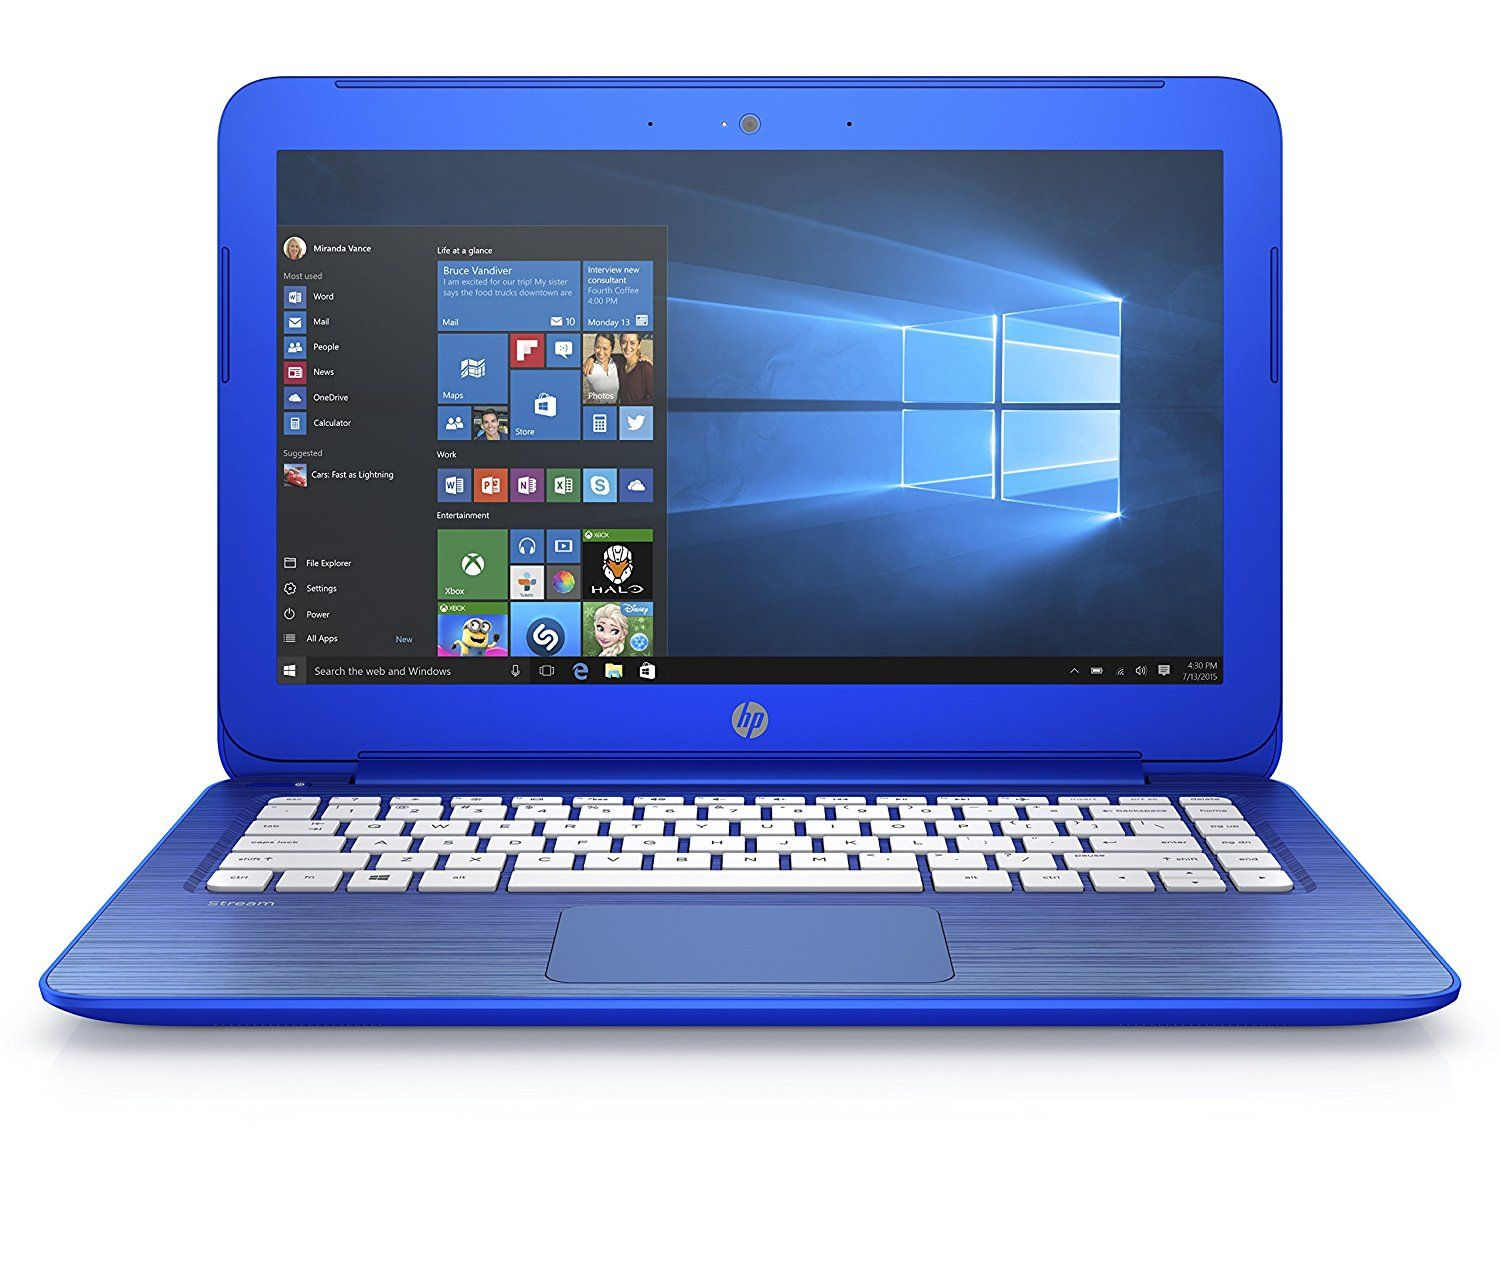 Hp Stream 13 C101ns Portátil De 3 Hd Intel Celeron N2840 2 Gb Ram Disco 32 Emmc 1 Tb One Drive Office 365 Personal Windows 10 X64